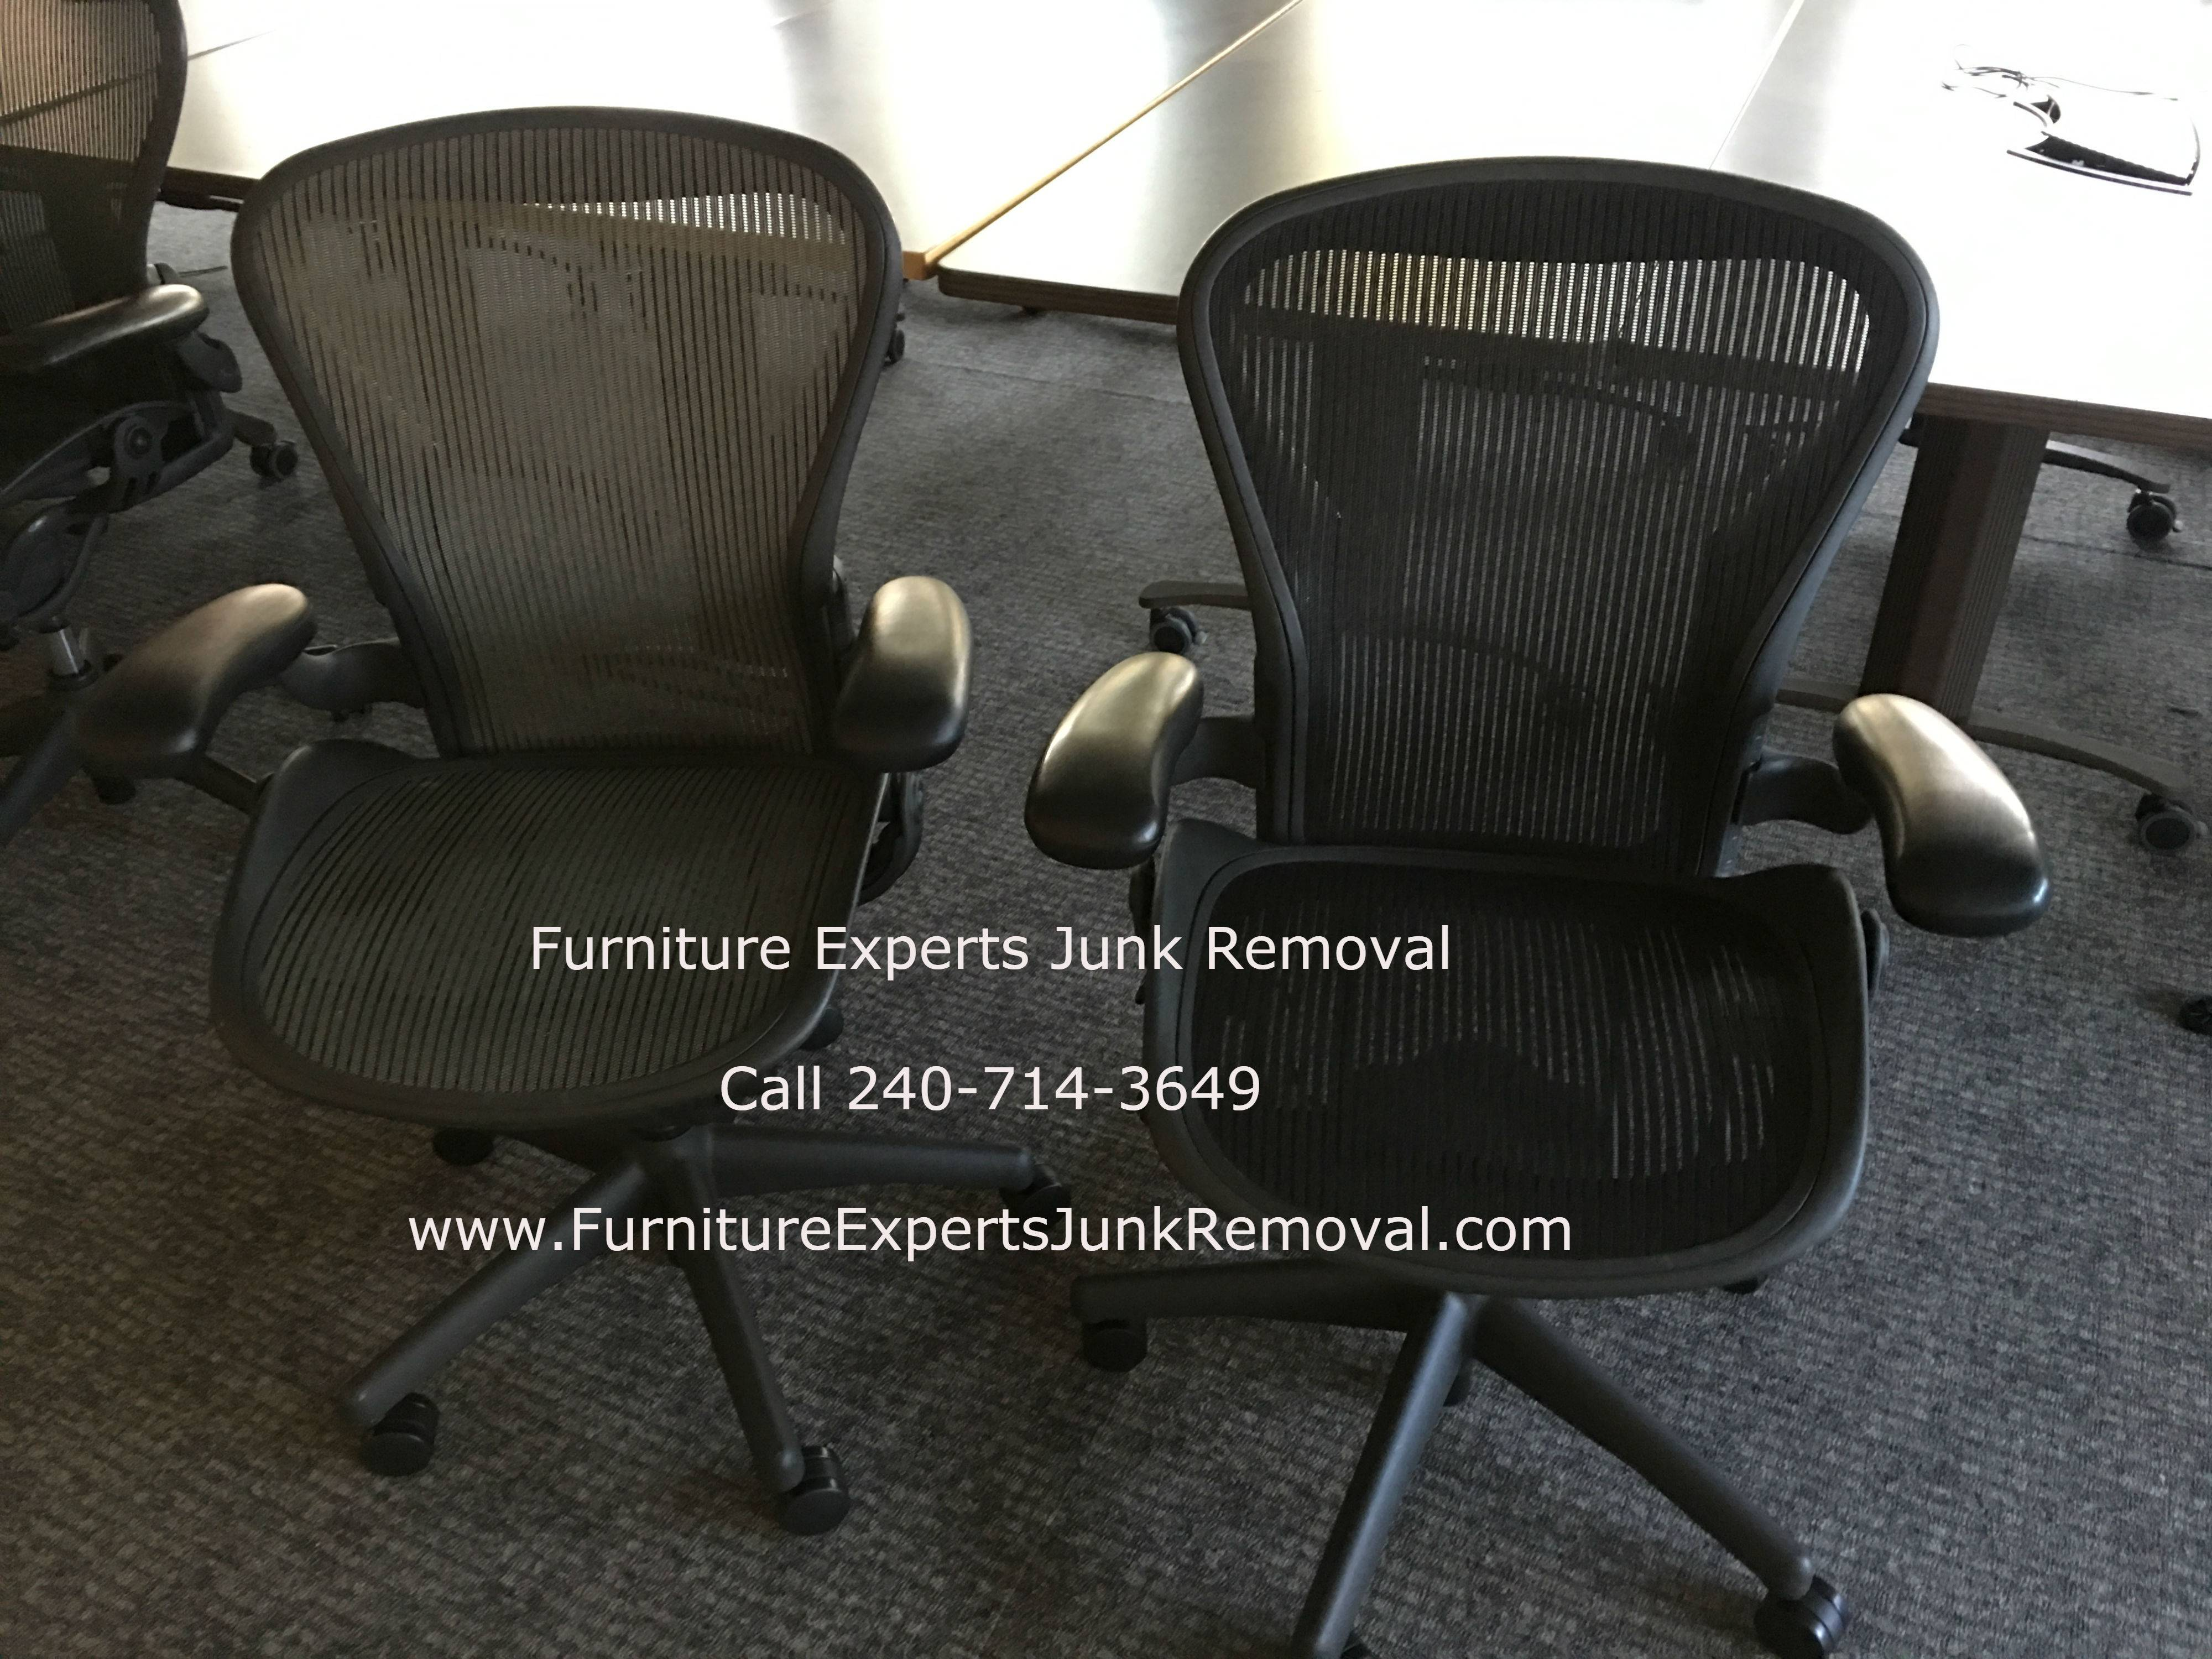 Junk office furniture removal in herndon VA